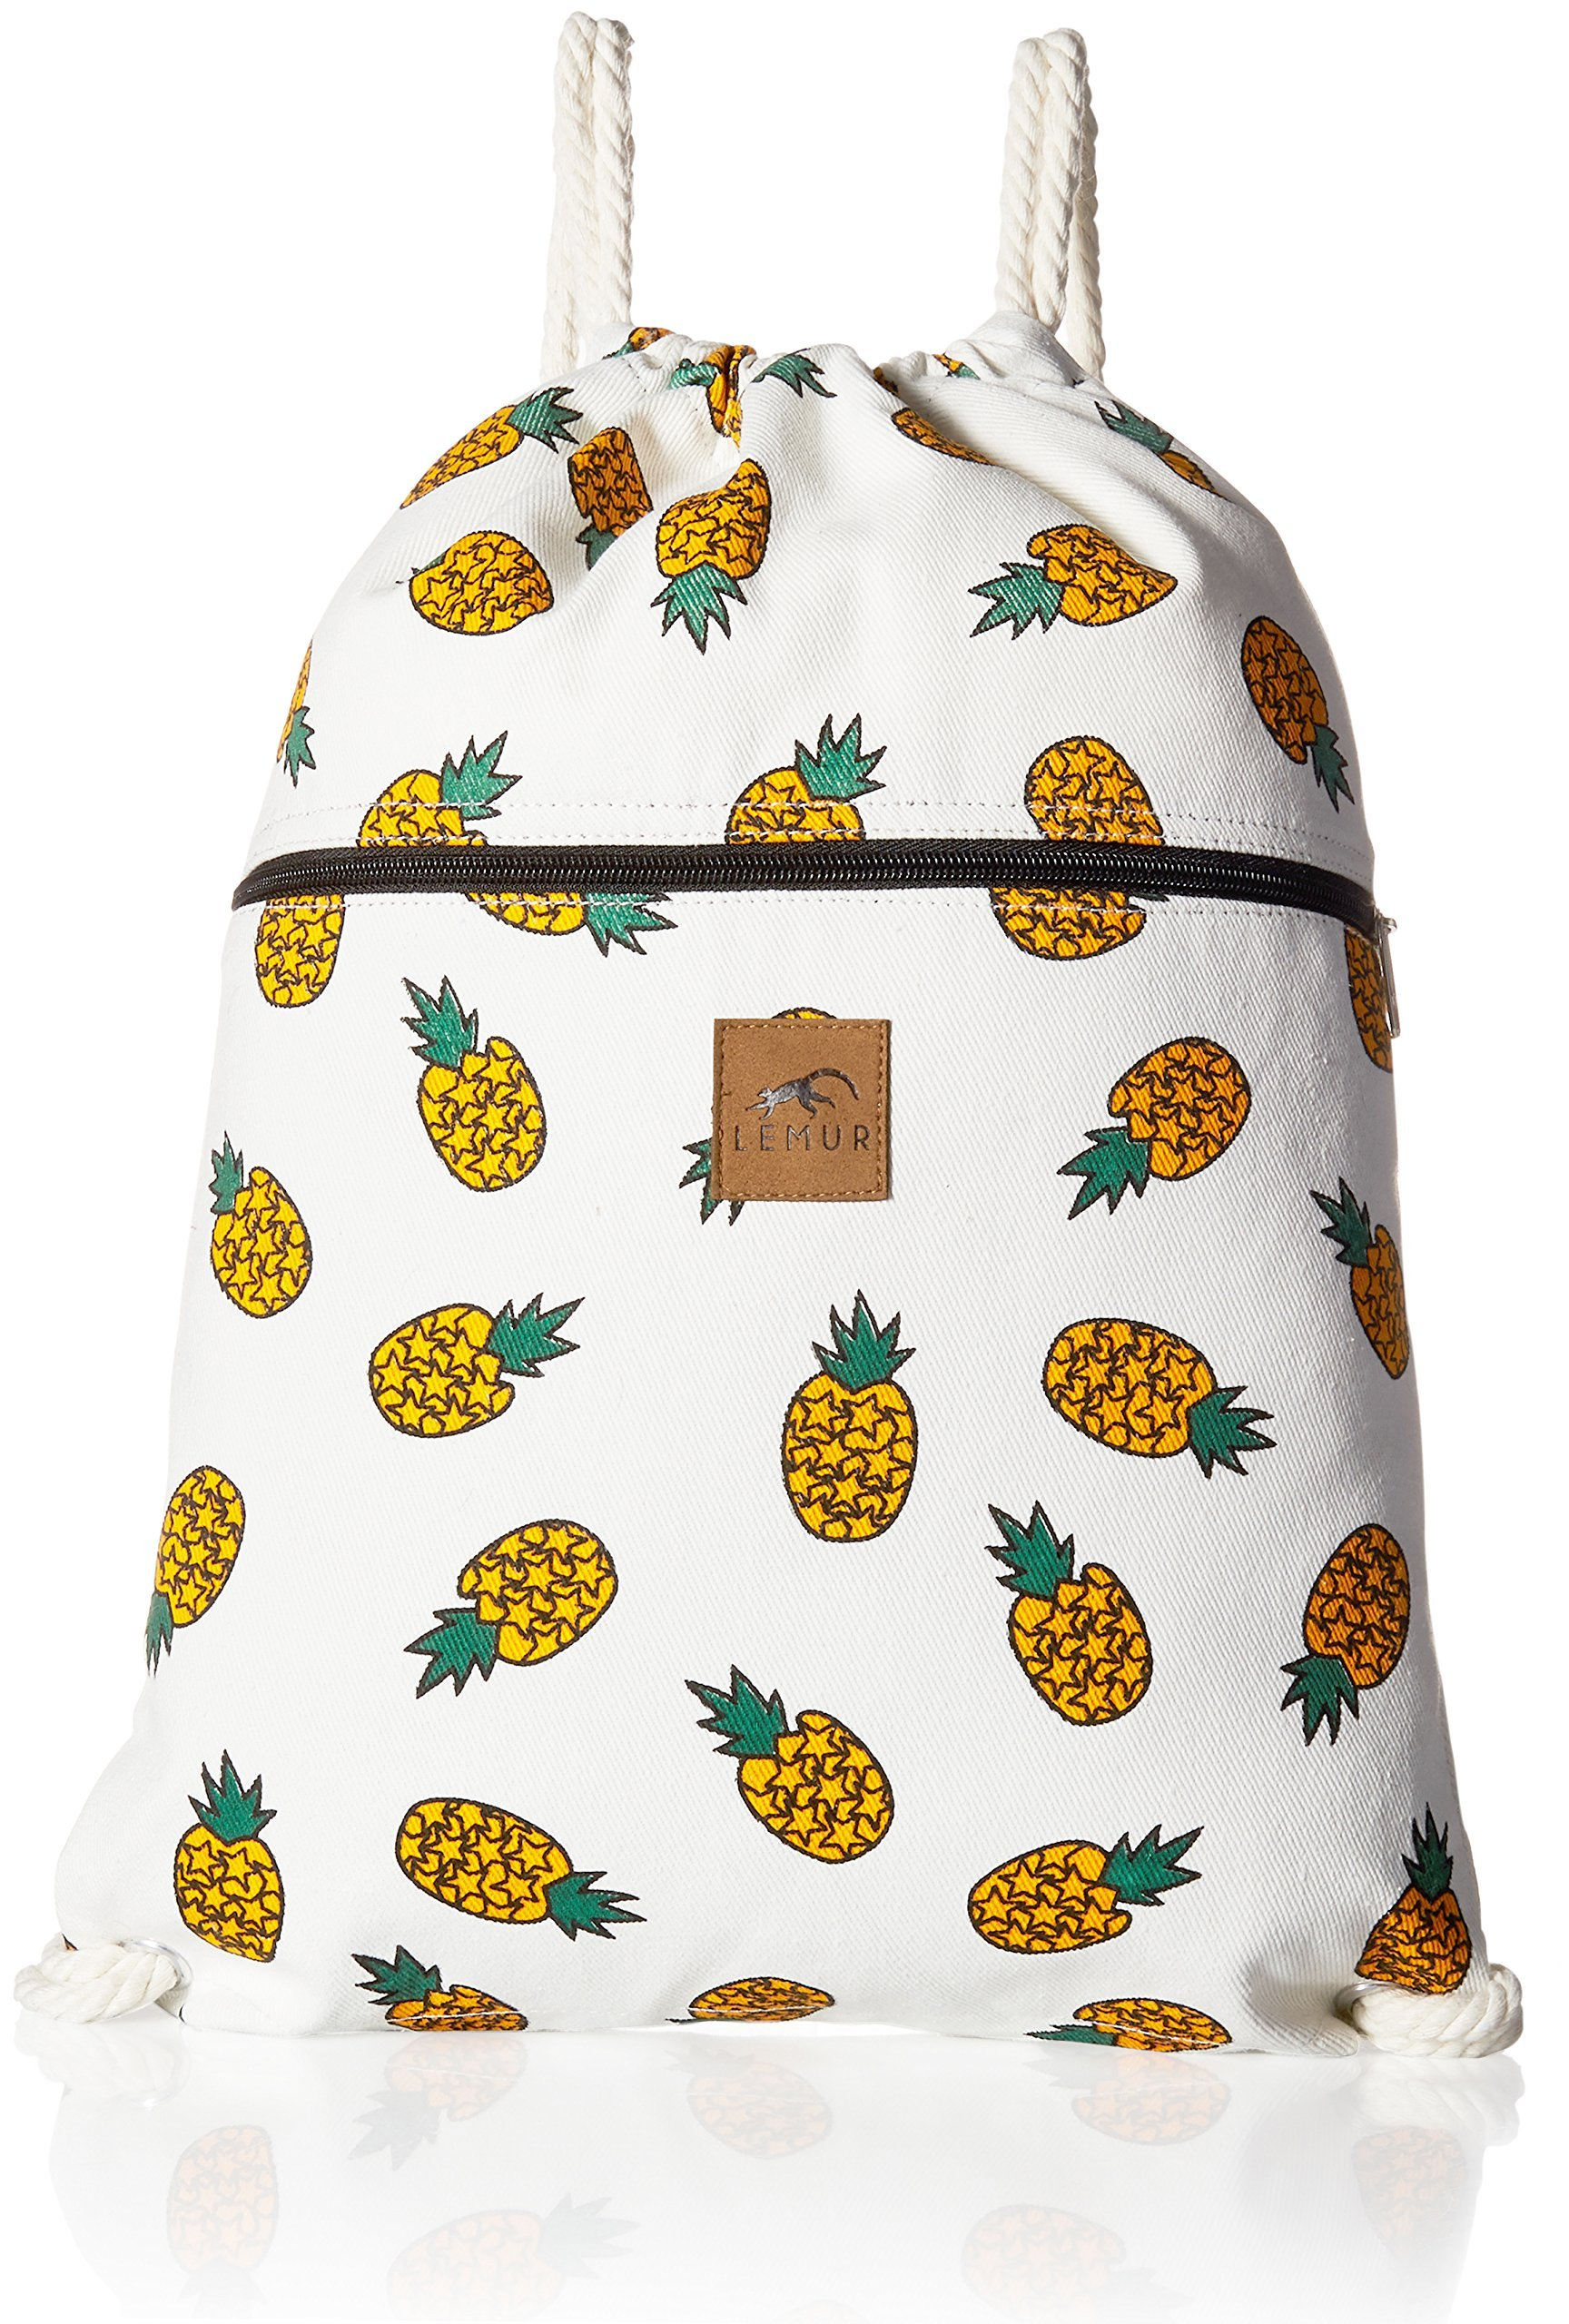 """Lemur Bags Canvas Drawstring Backpack with Front Zipper Pocket - Large 19'' x 13"""" Gym, School, Travel Day Bag - Thick Durable 100% Natural Canvas Material with Soft Cotton Strings (Pineapples)"""